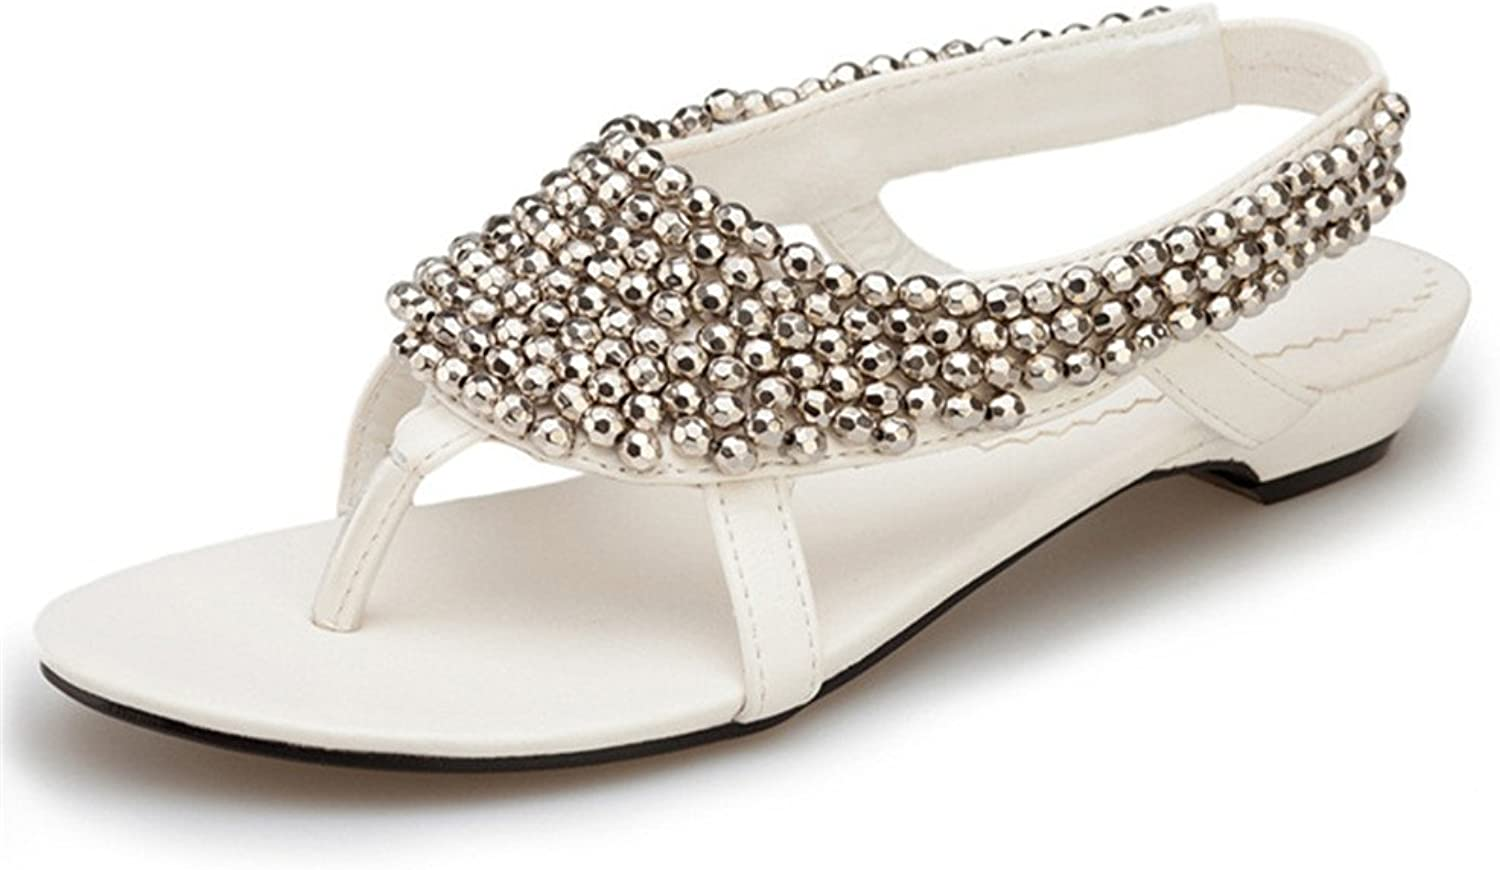 Sandals, clip toe pastoral sandals   shiny special flat feet rhinestone large size women's shoes ( color   White , Size   5.5 B(M)US )